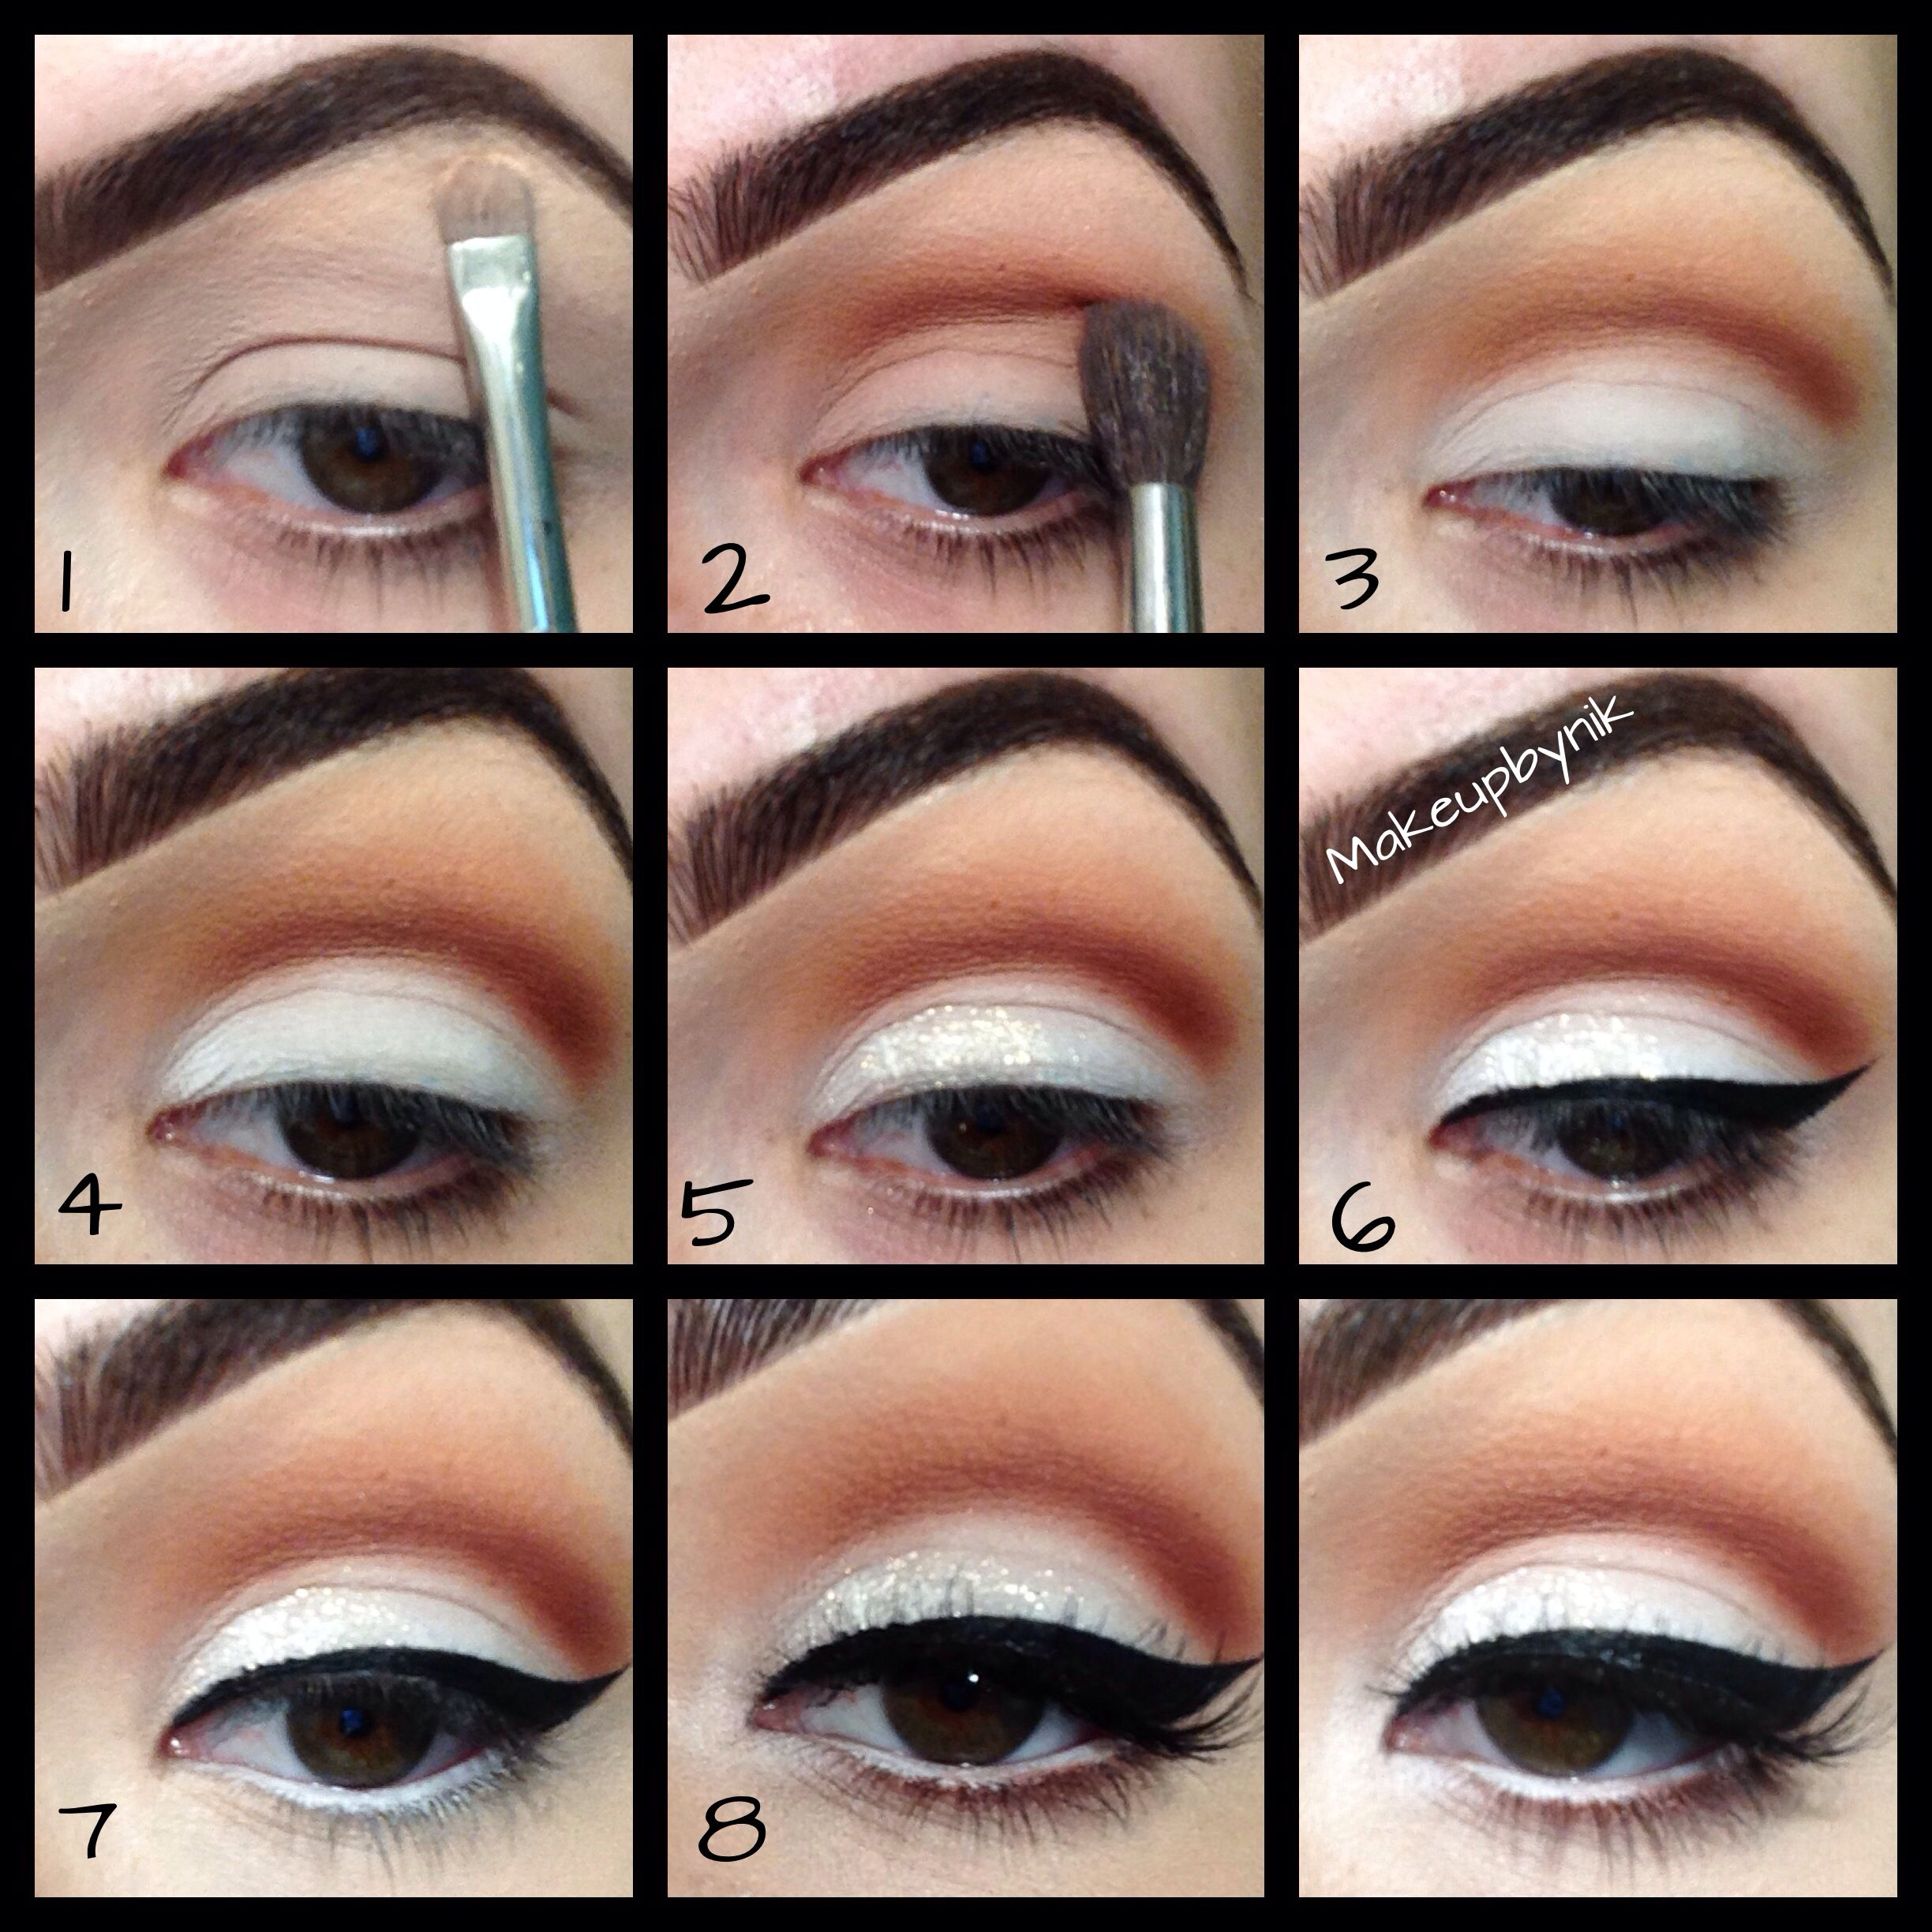 Step by step using my anastasia beverly hills lavish palette and explore eye tutorial lorac pro palette and more baditri Gallery